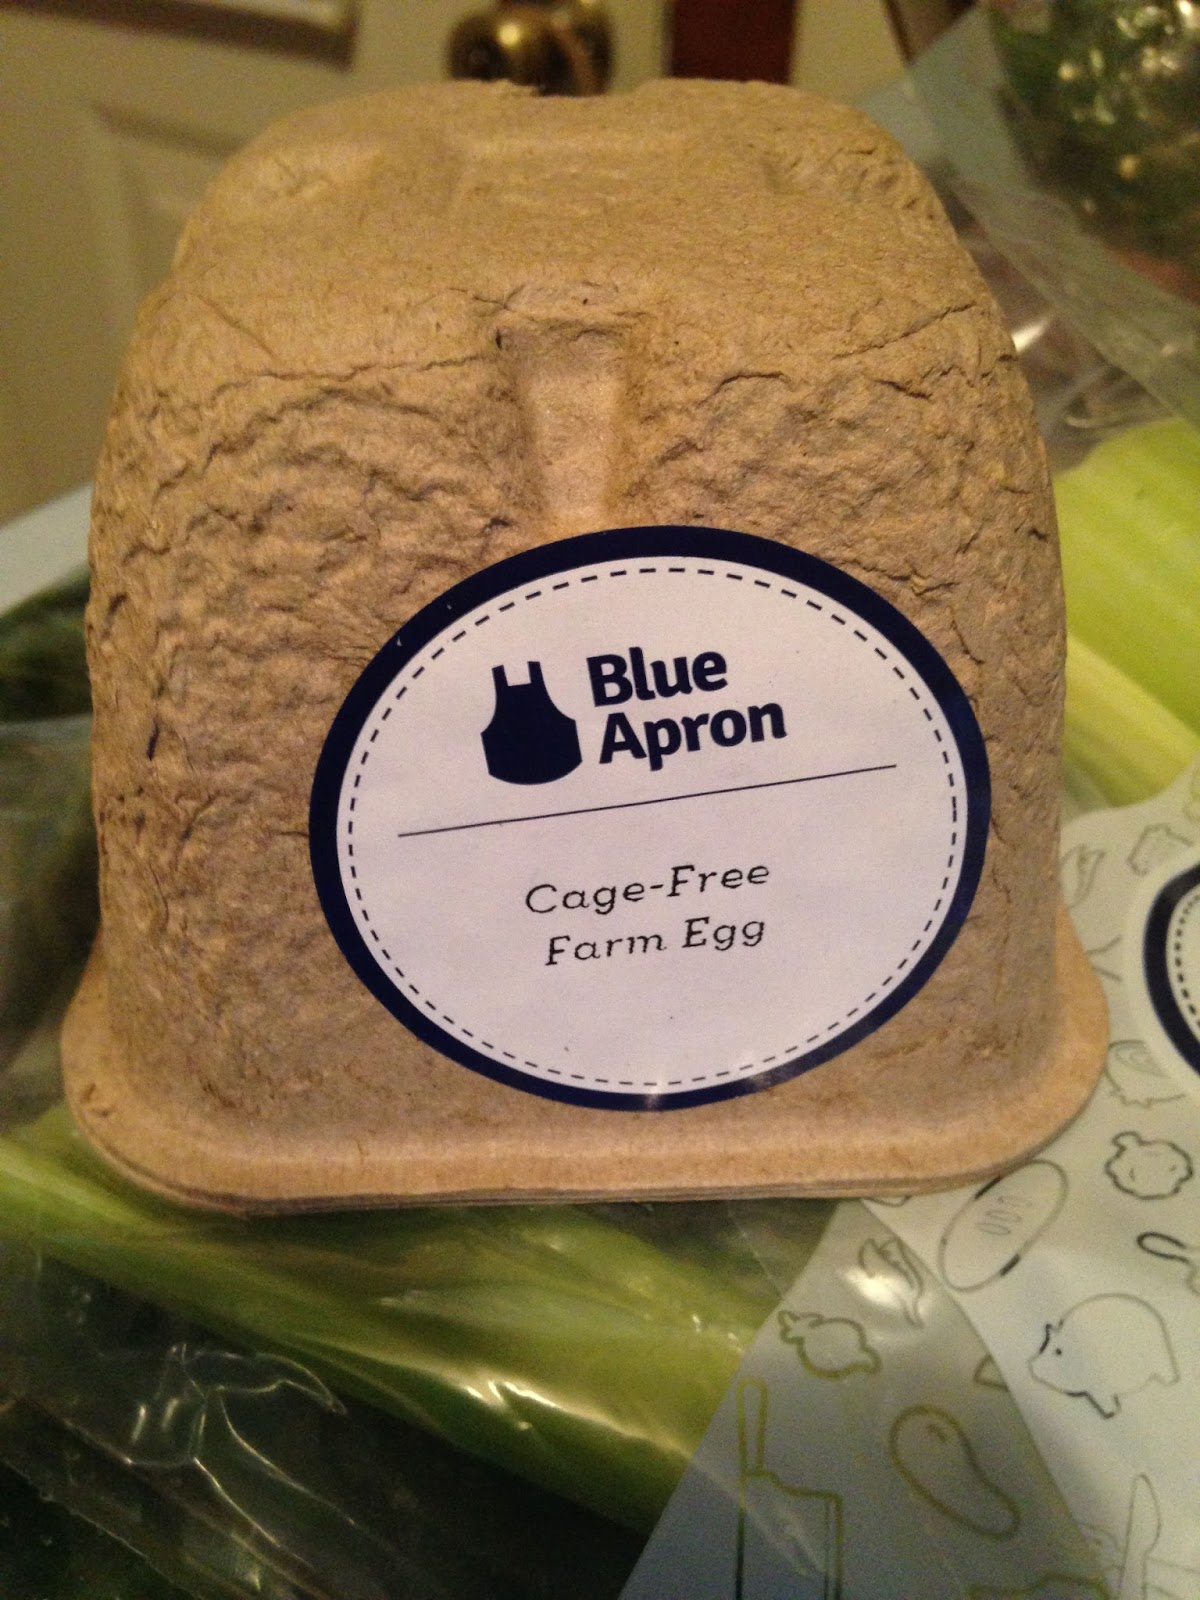 Blue apron discount